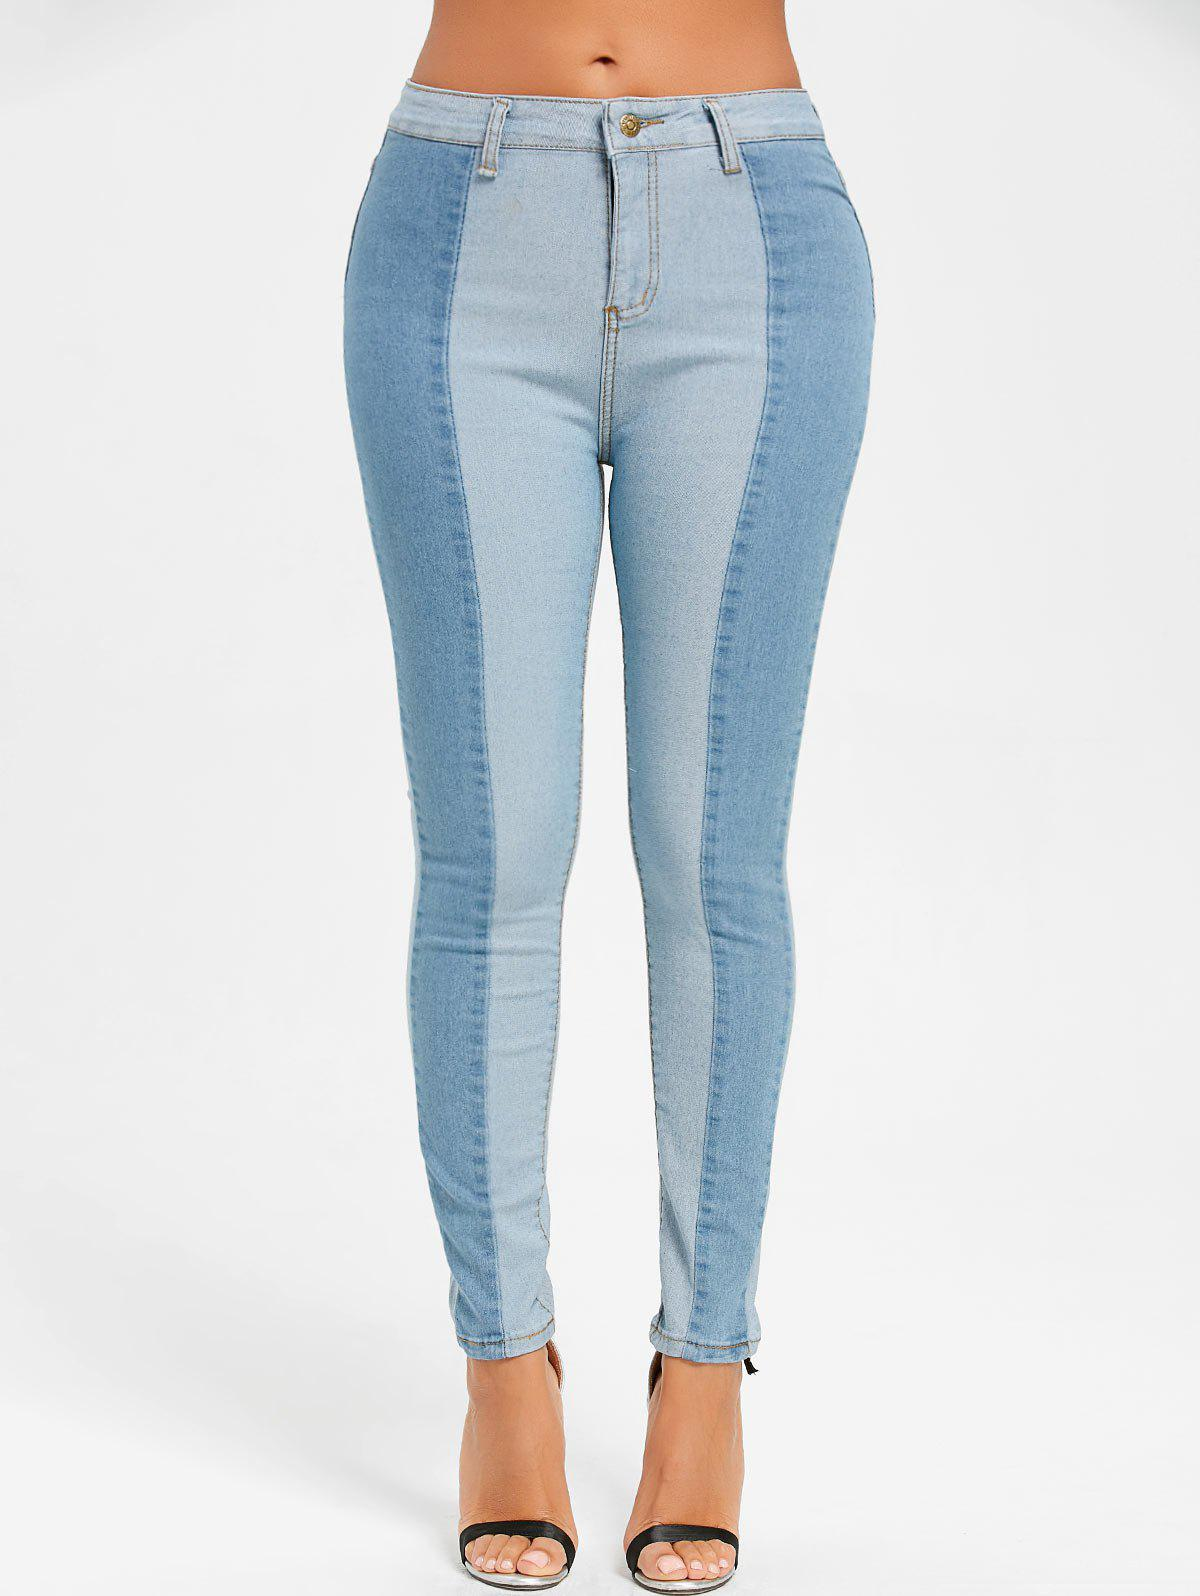 Discount Two Tone Color Skinny Denim Jeans